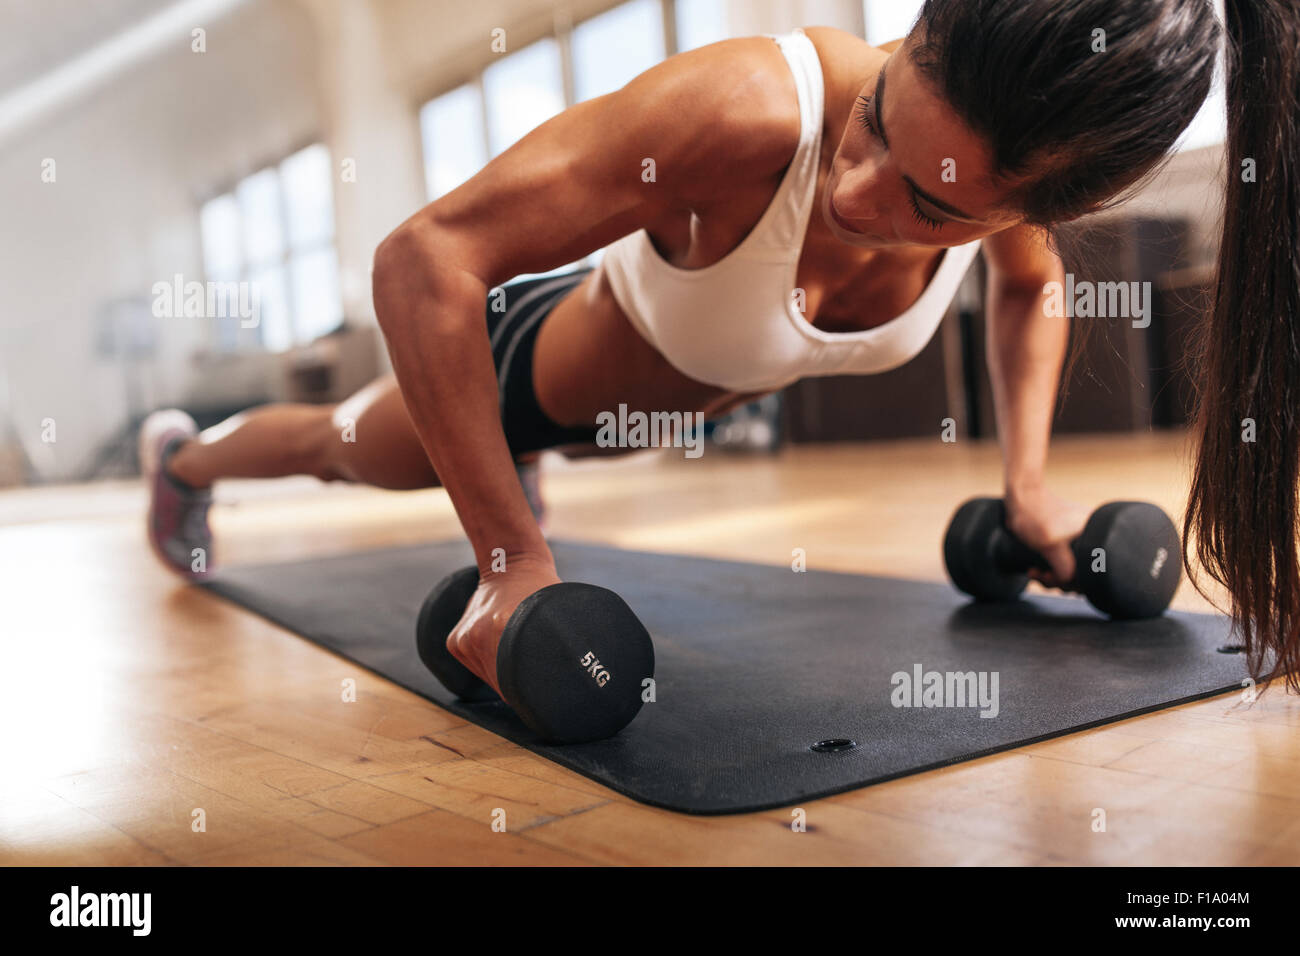 Gym woman doing push-up exercise with dumbbell. Strong female doing crossfit workout. - Stock Image